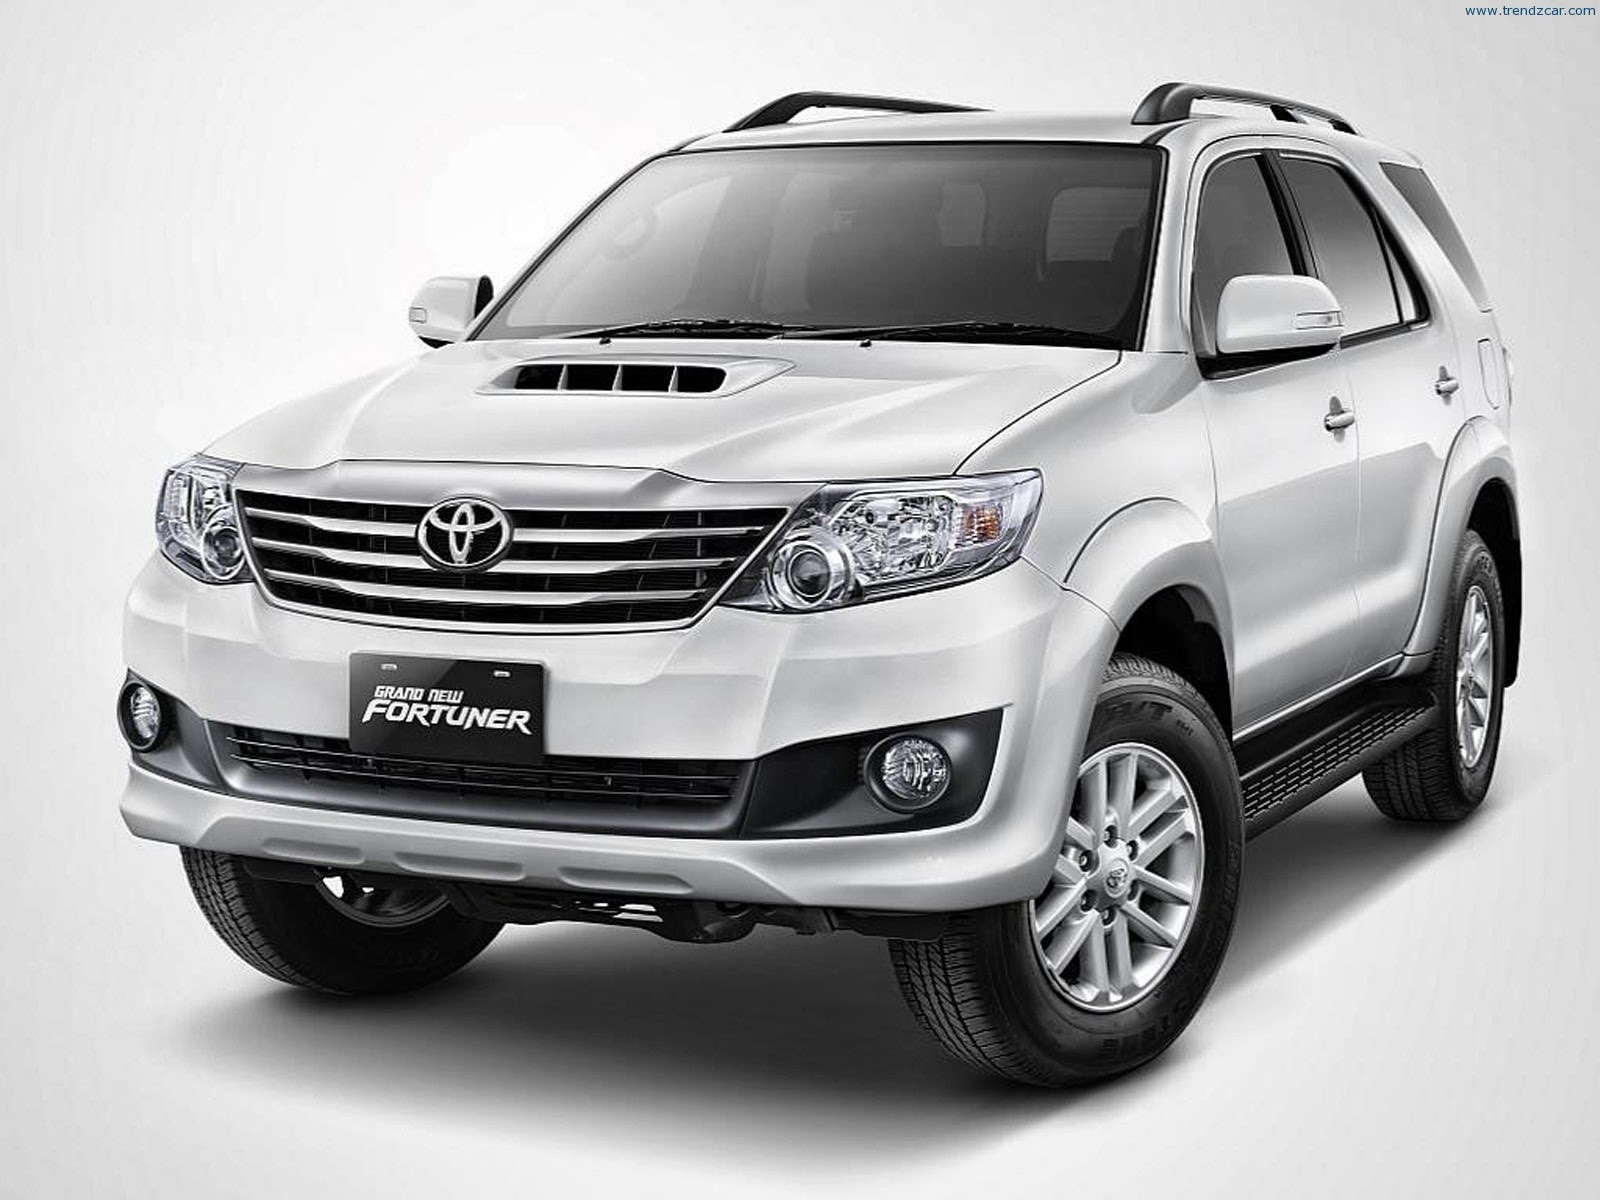 Top Ten Suv Cars In India New Suvs In India Best Suv Cars 2014